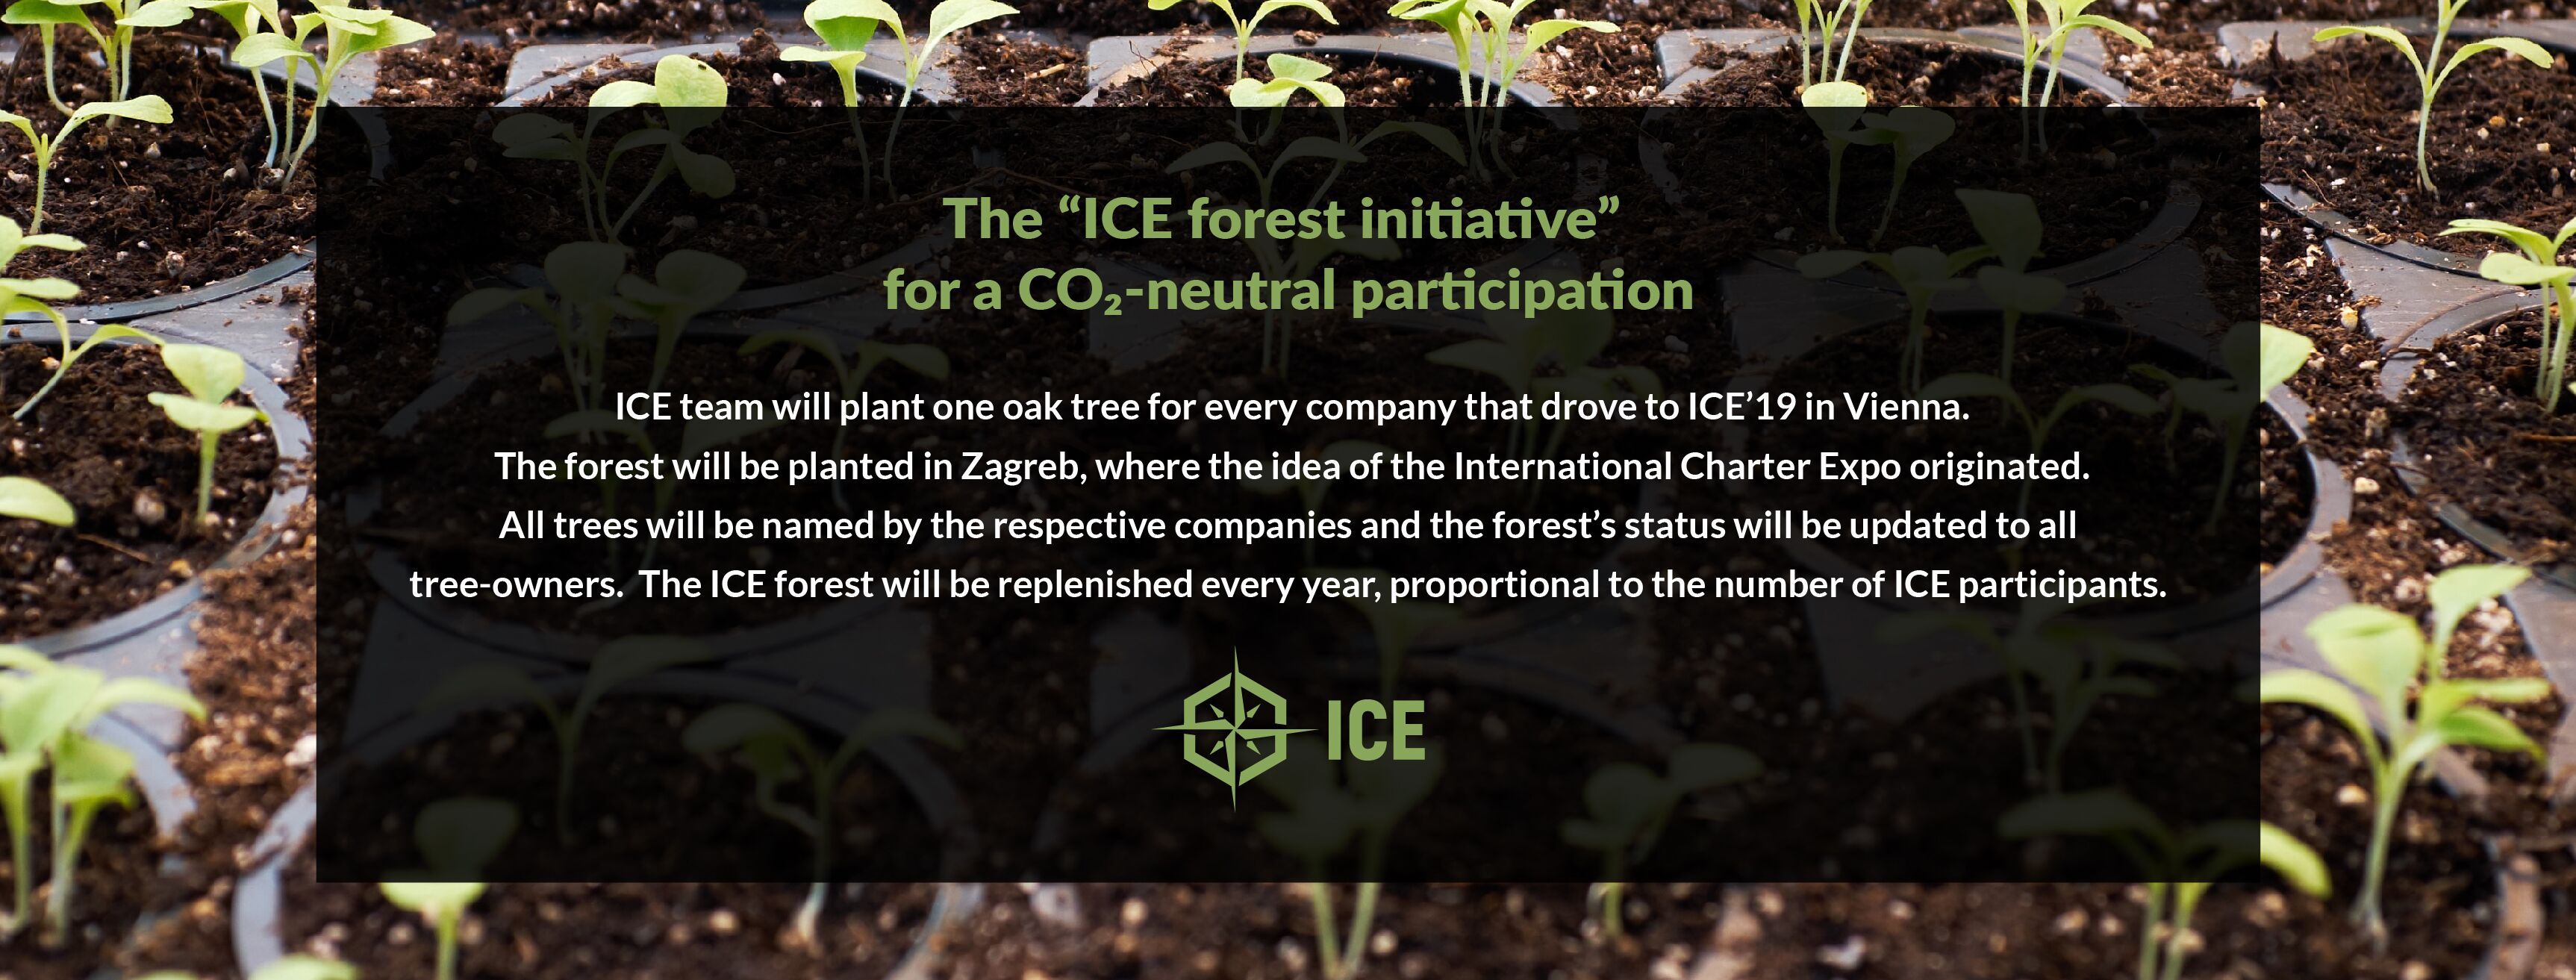 ICE Forest initiative